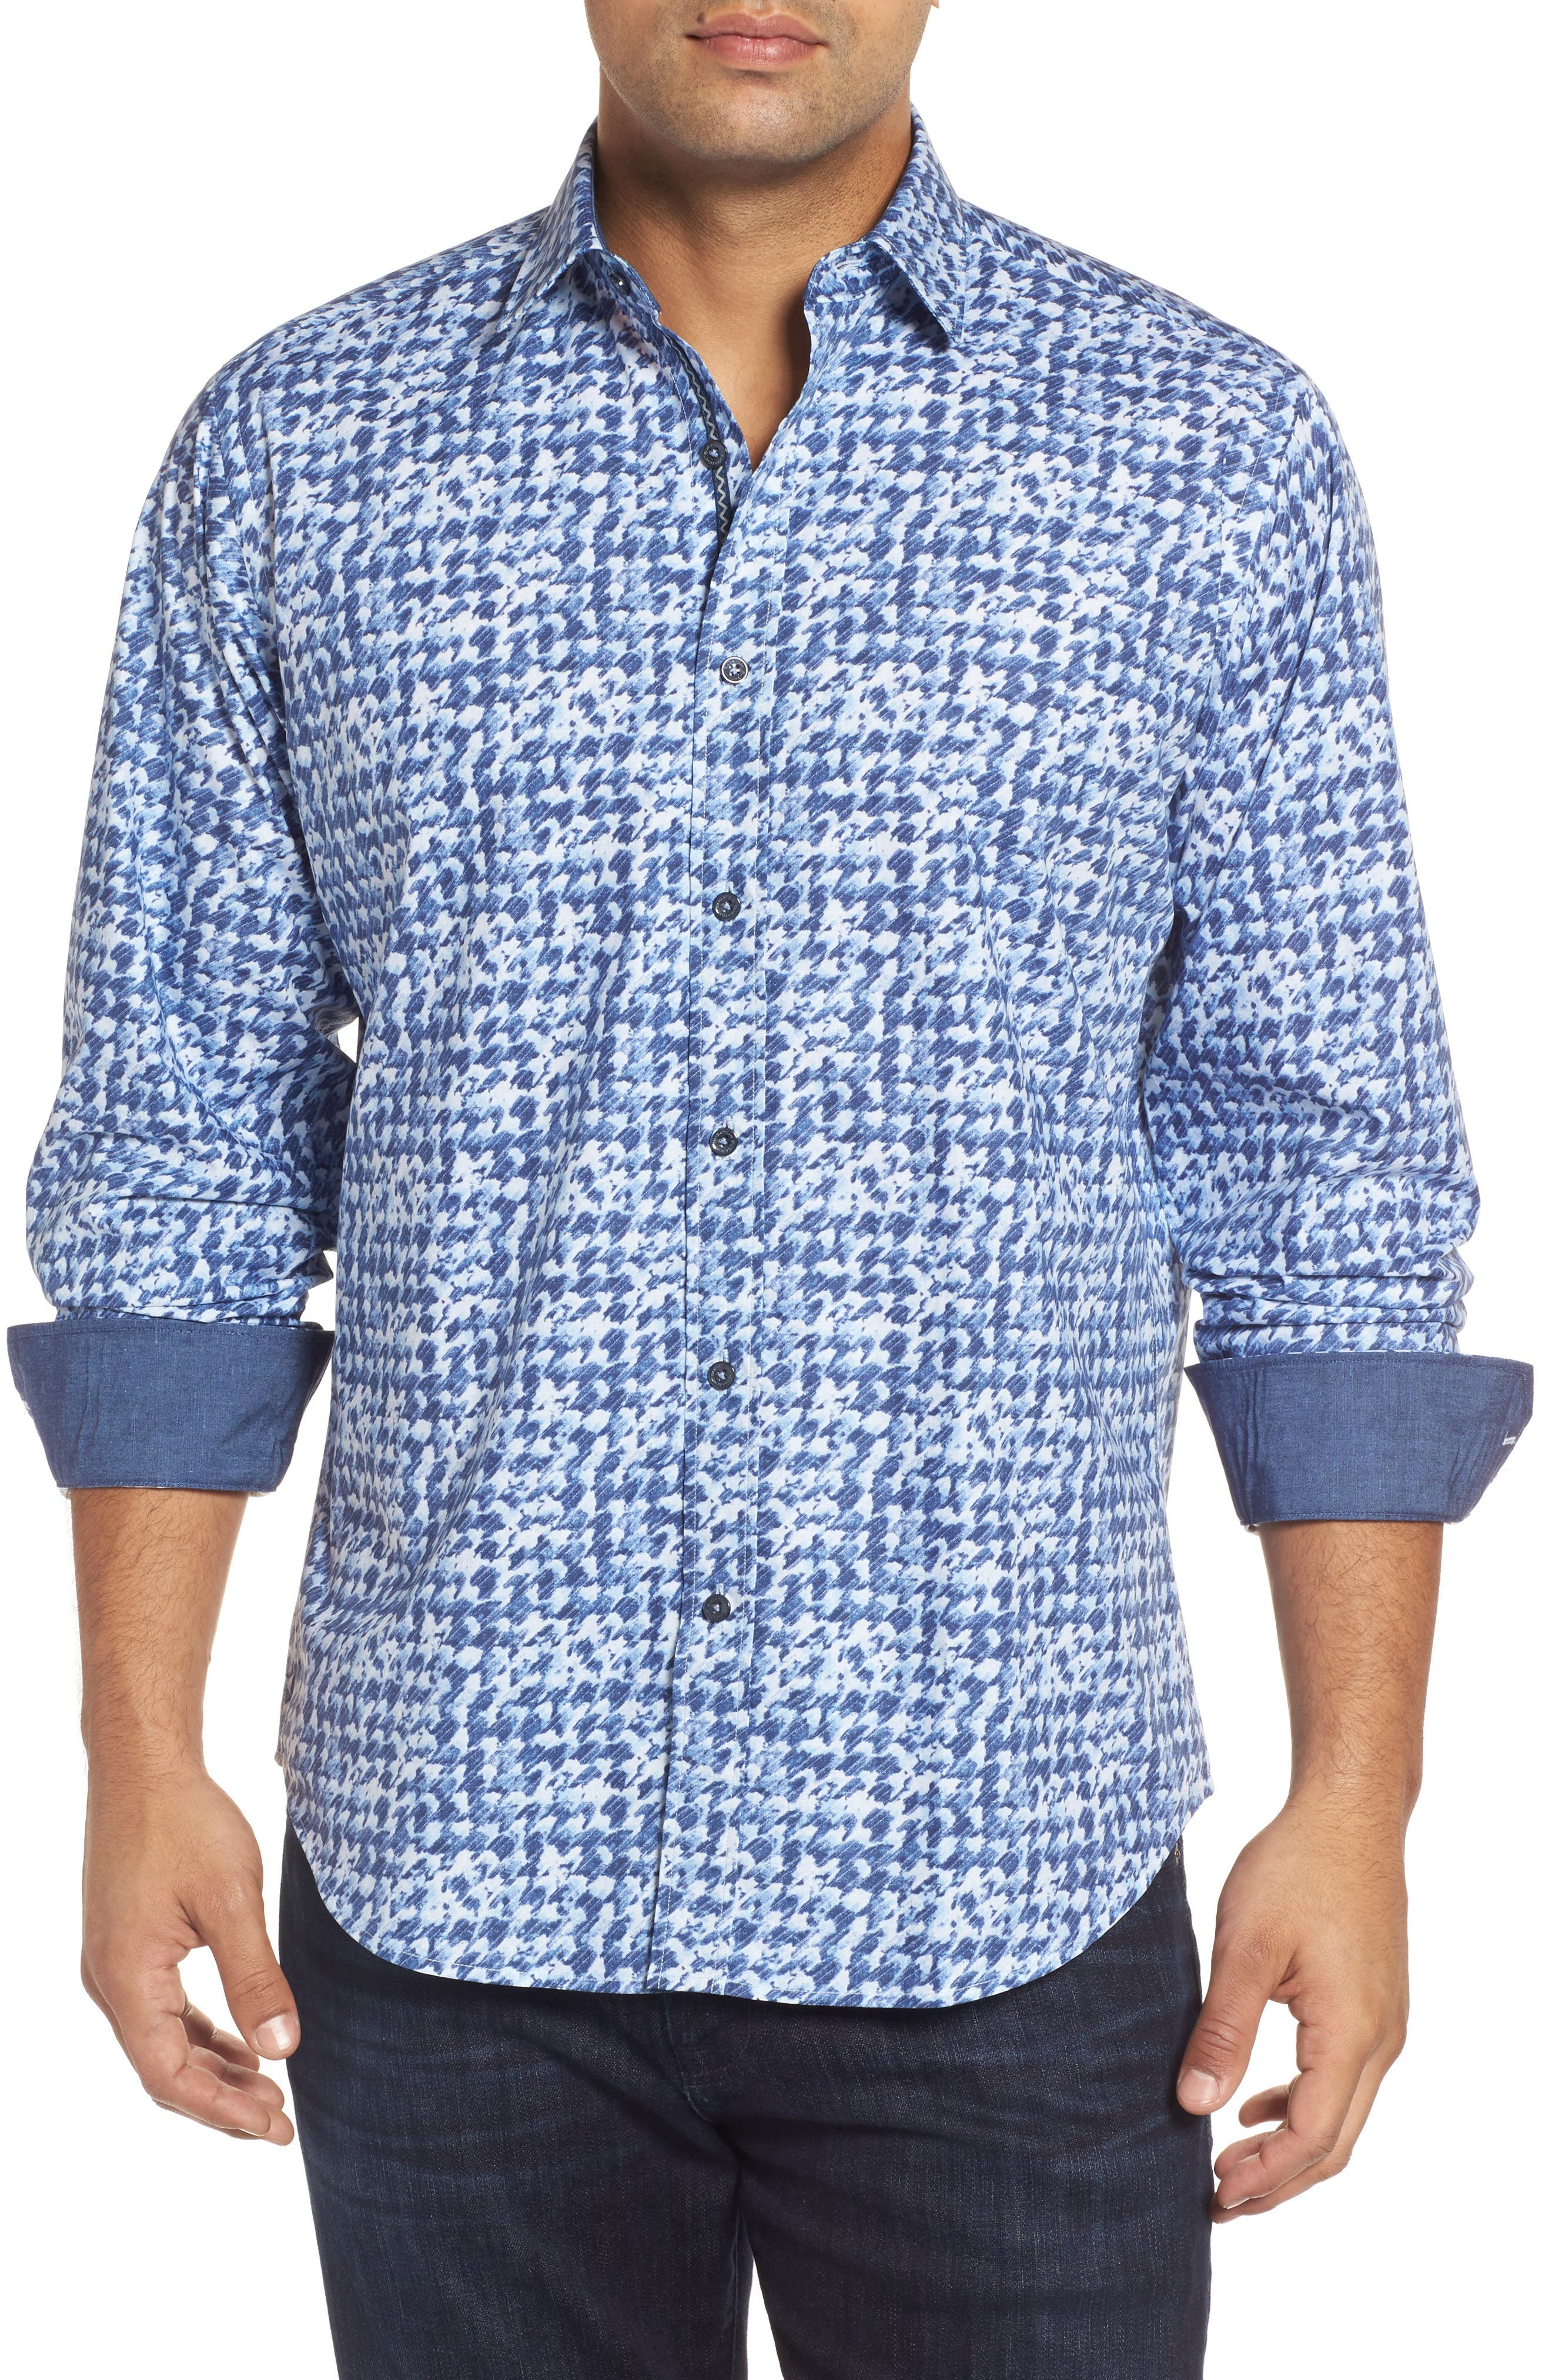 Main Image - Bugatchi Classic Fit Patterned Sport Shirt